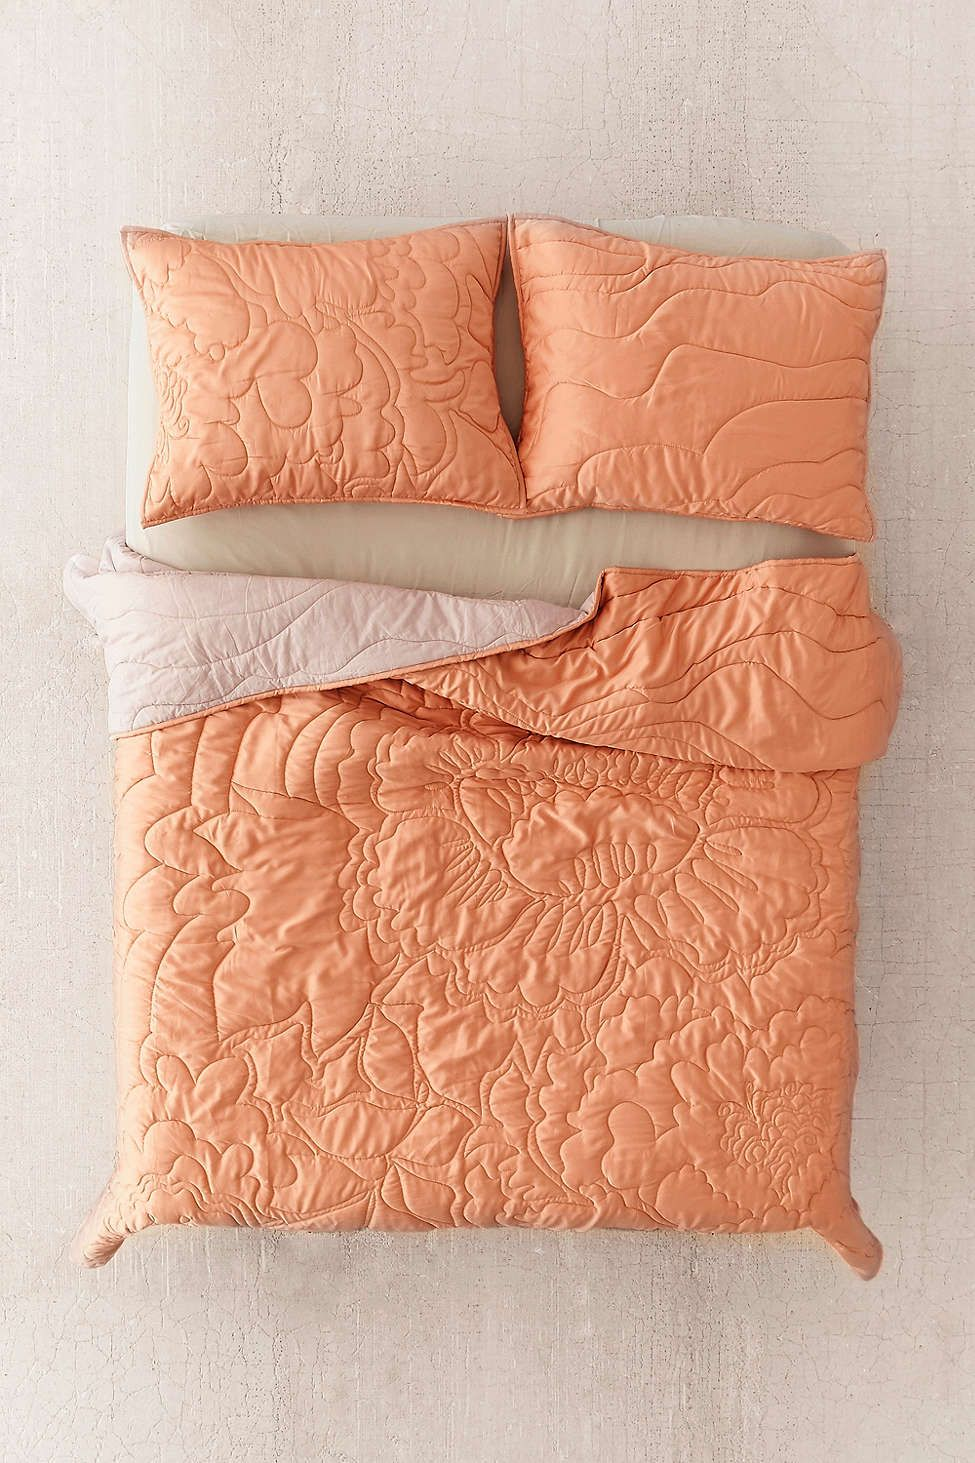 Nyla Satin Quilt Bedding - Bed Cover | Home Decore and Gift Ideas ...